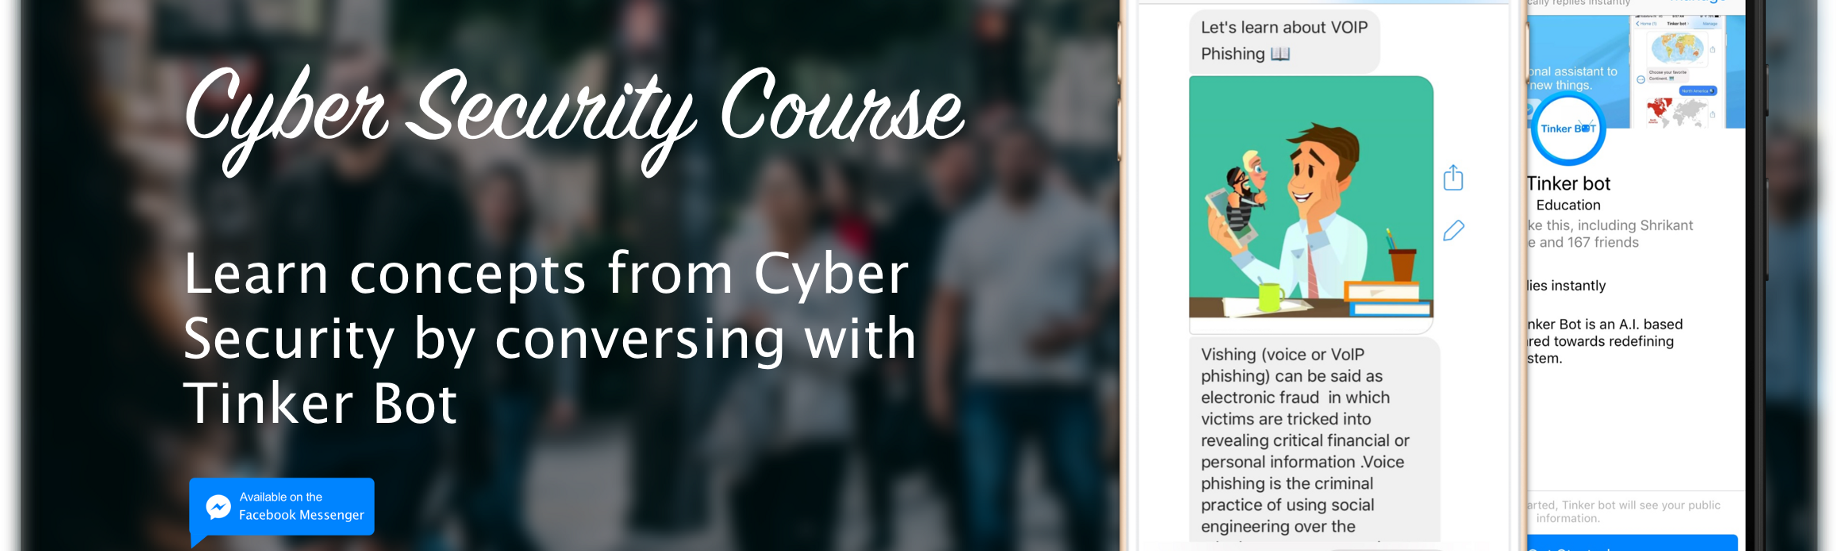 A Brief Overview about Cyber Security Course  - Tinker Bot